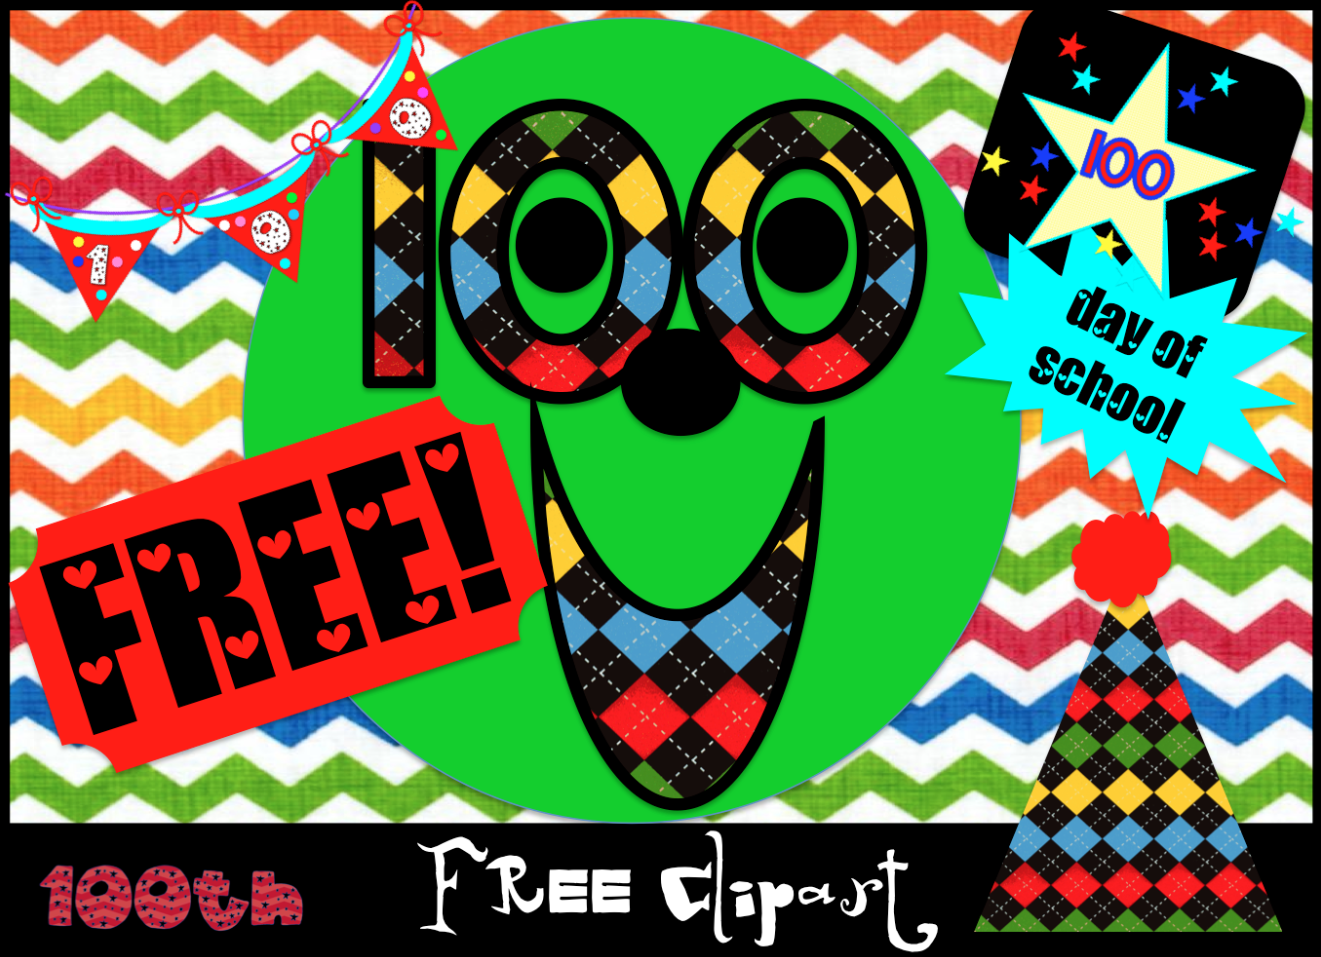 100th Day of School Clipart The 100th Day of School